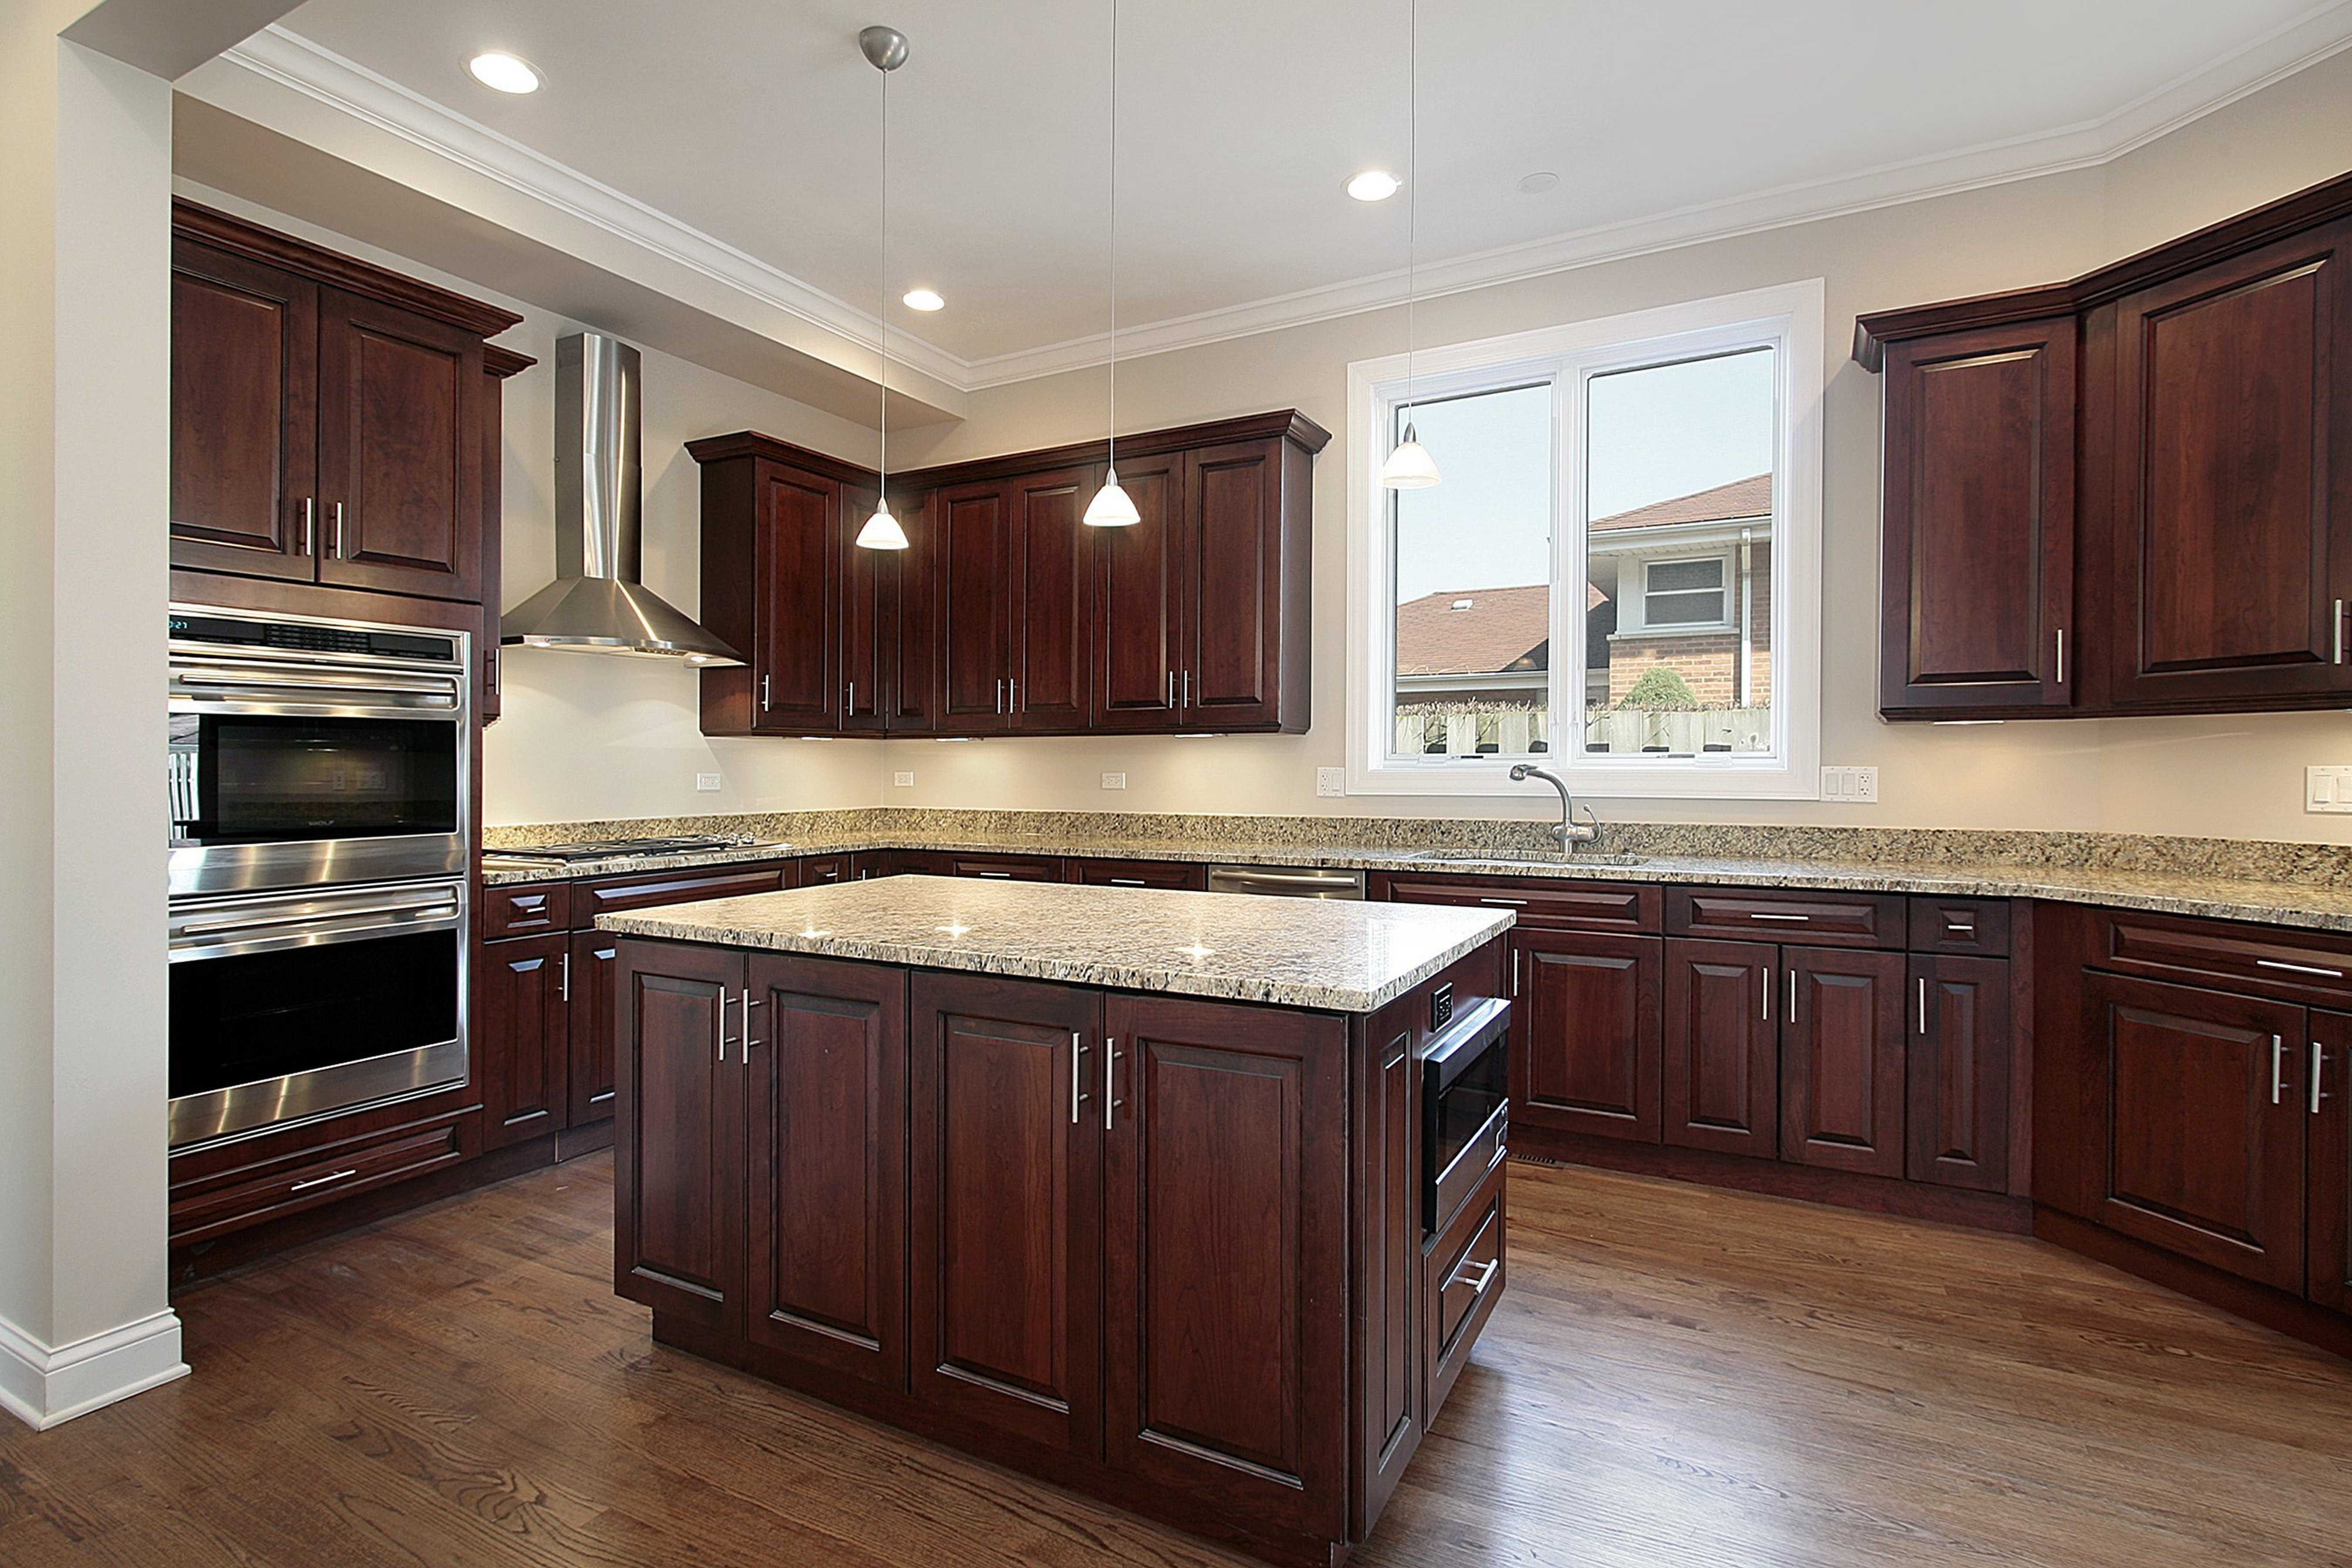 Kitchen Floor Ideas With Dark Cabinets Kitchen Renovation Photos Afreakatheart